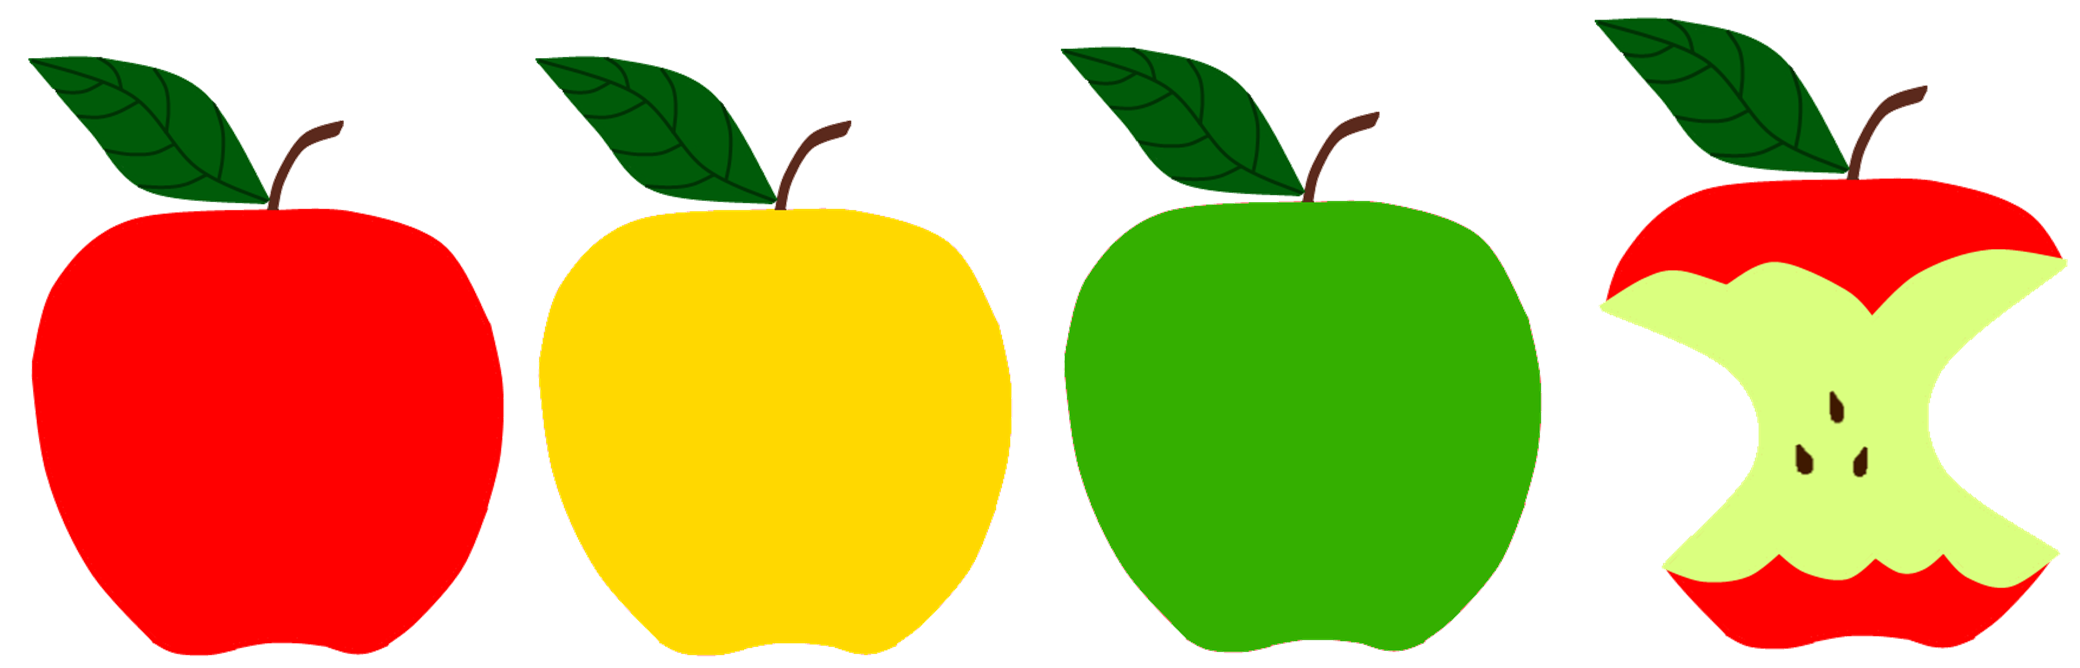 Apples sunflower red green. Storytime clipart area